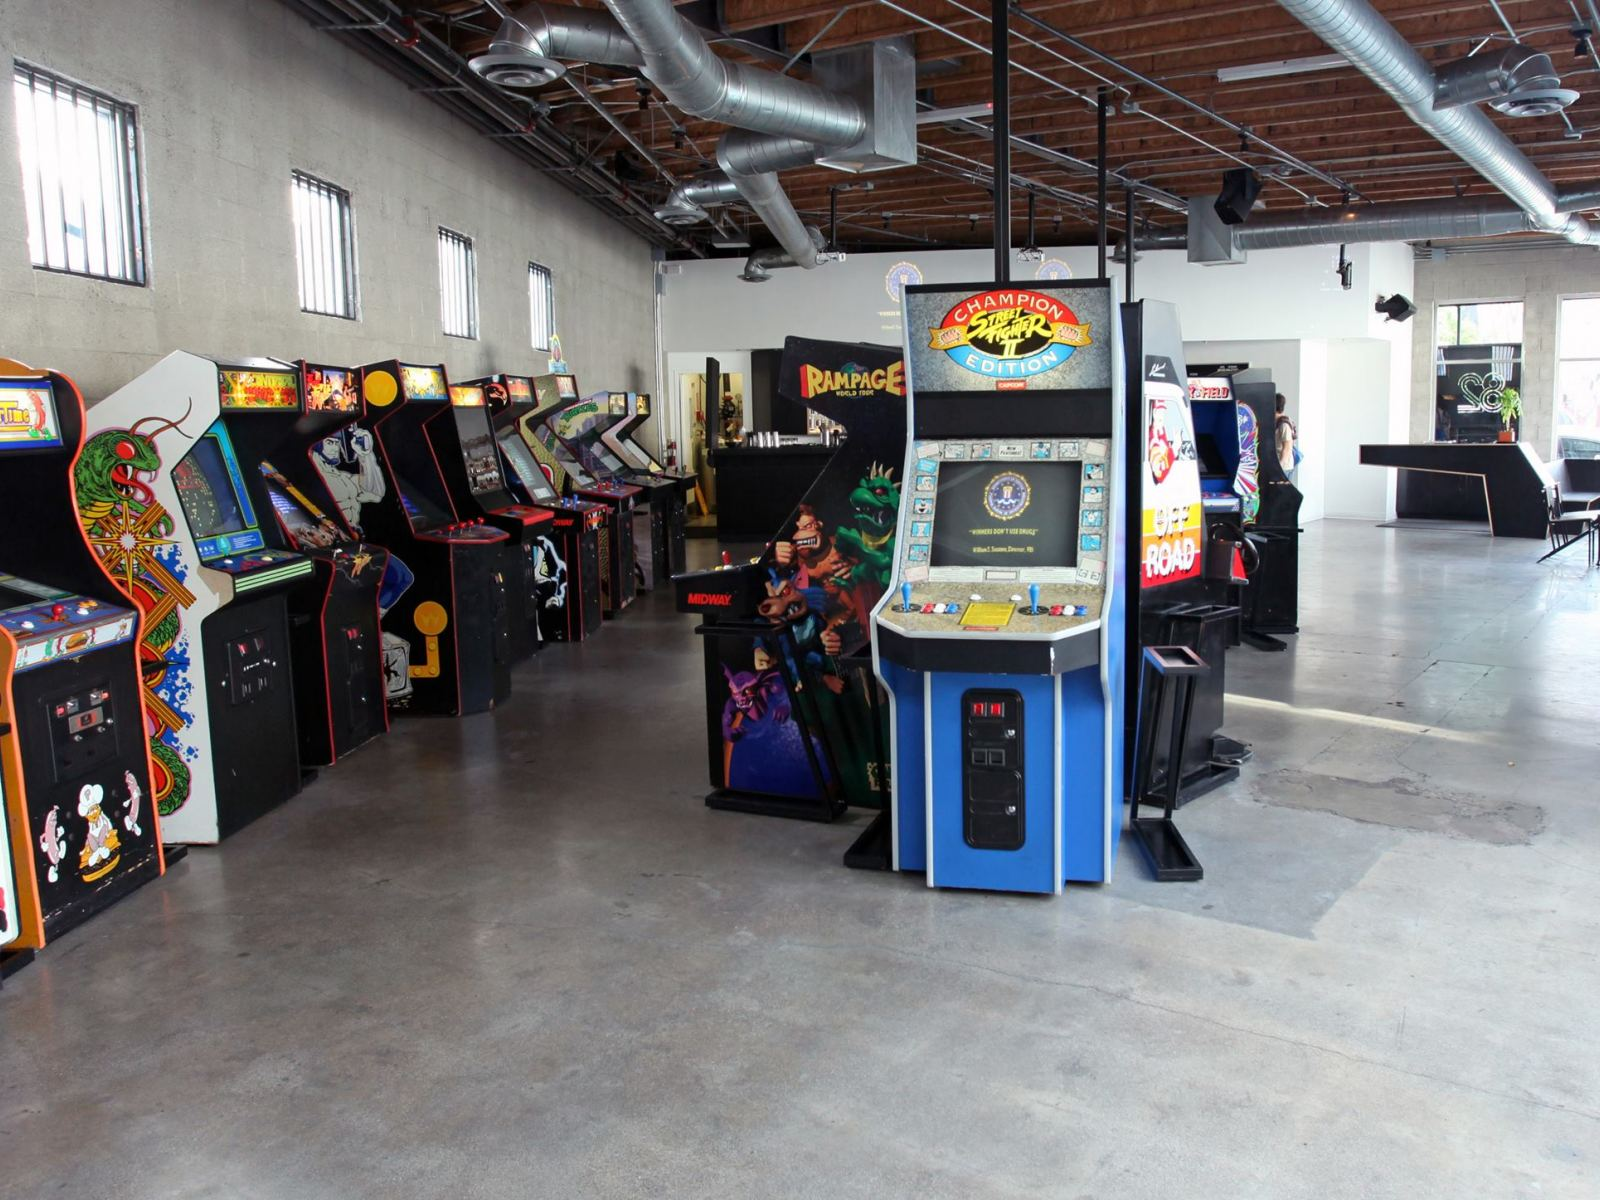 Arcade games at EightyTwo in the DTLA Arts District